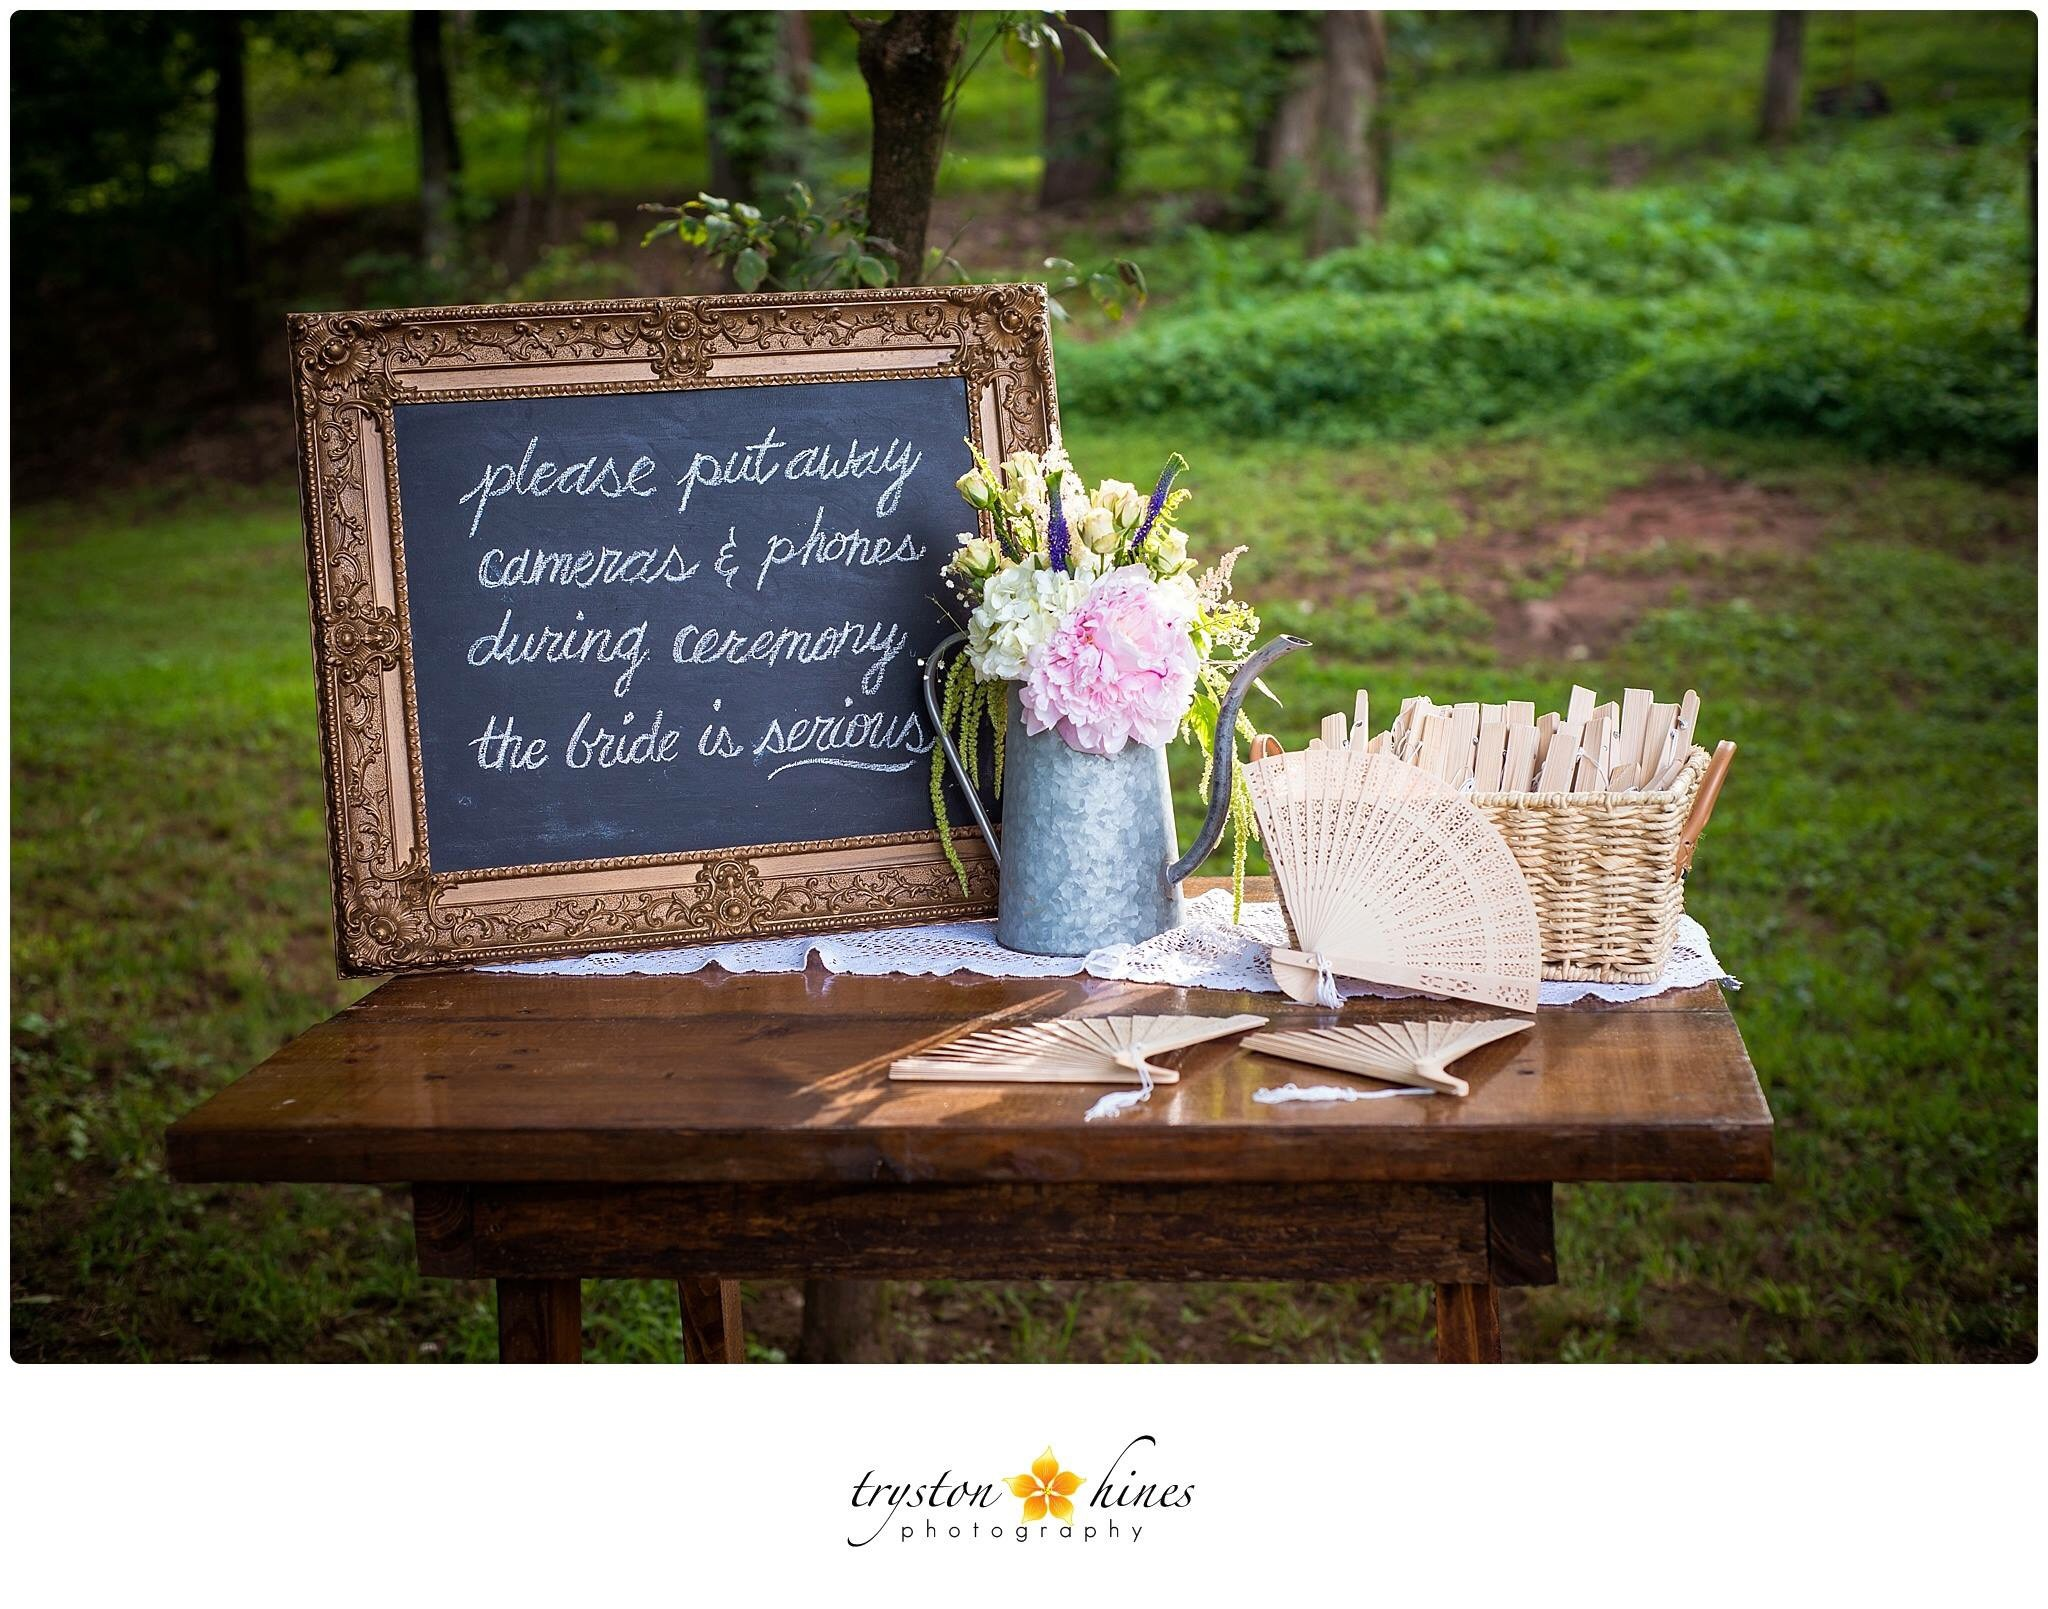 Tryston Hines Photography , from  Breanna + Bryan 's wedding at The Barn